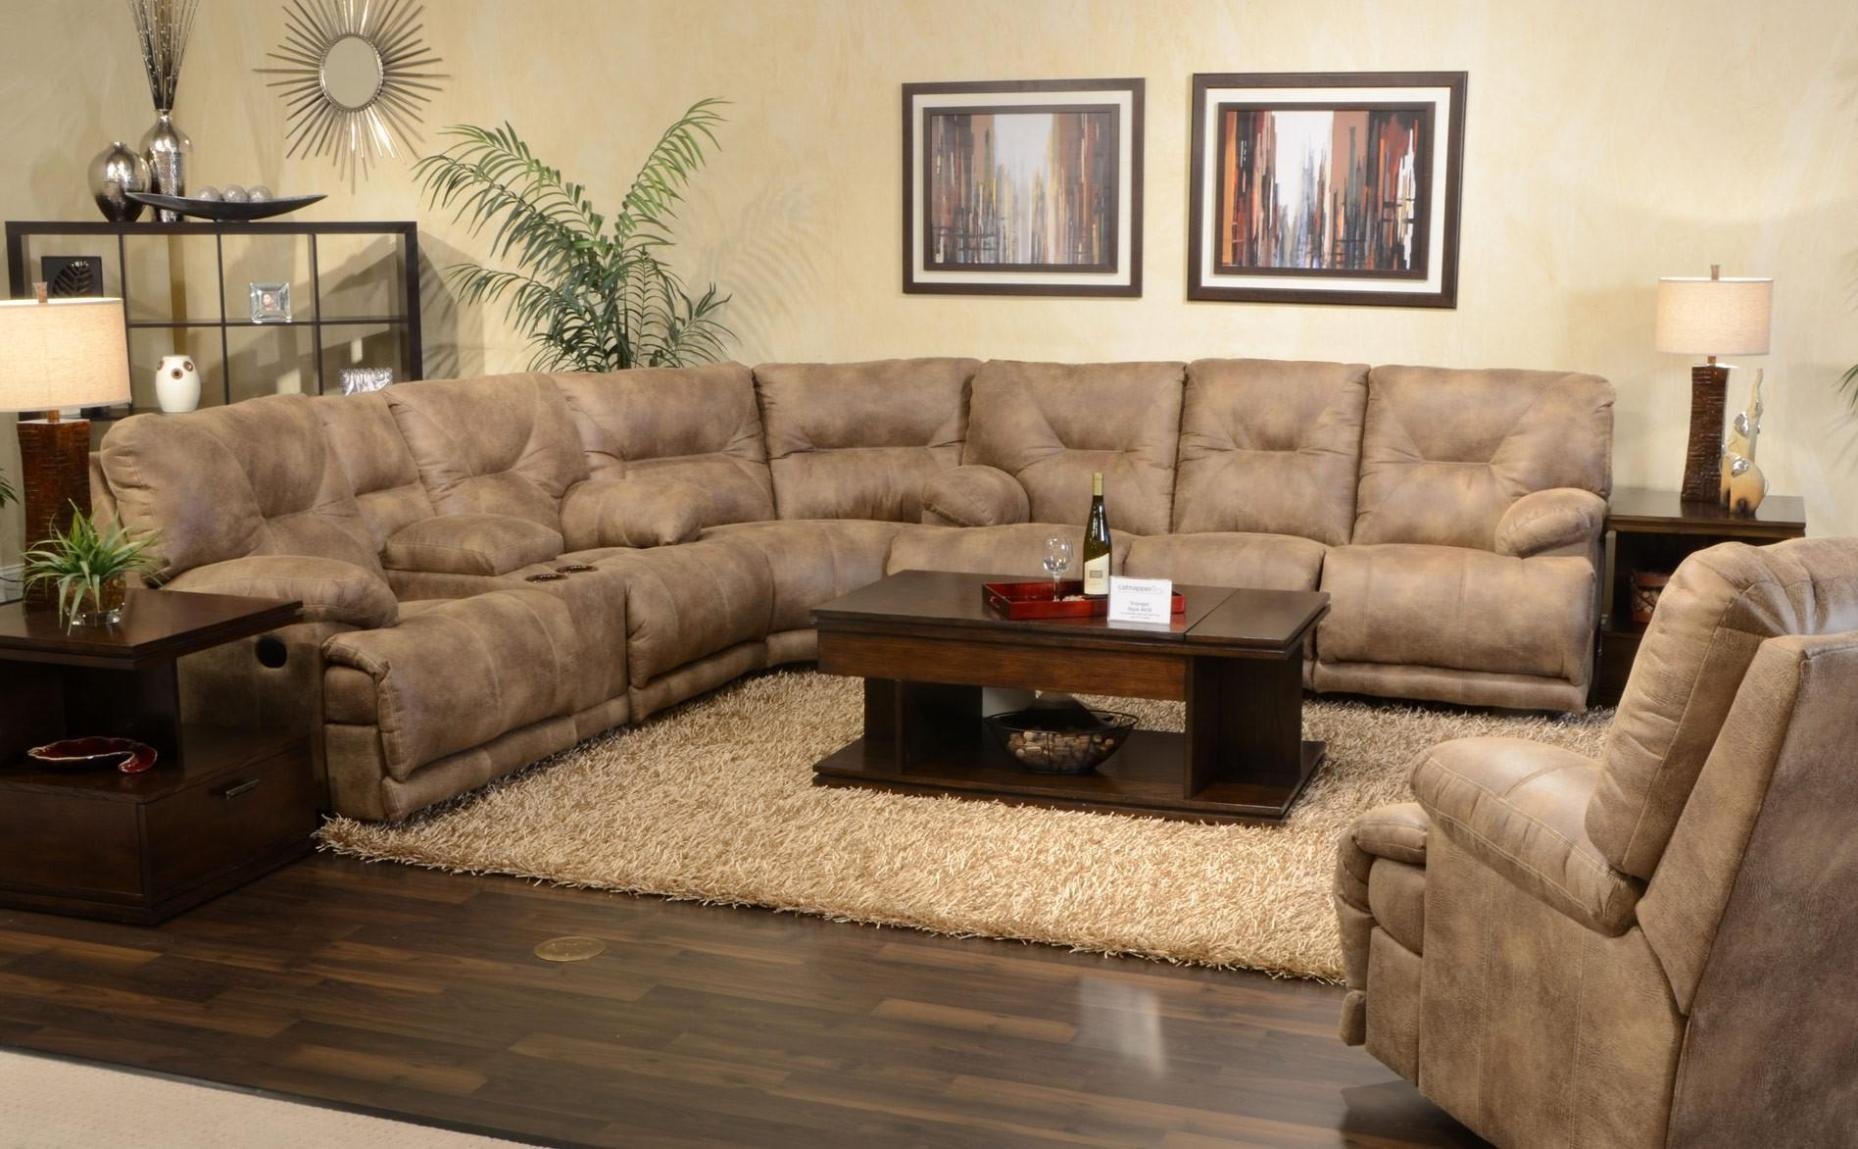 Best Slipcovers For Reclining Sectional Sofas Intended For Jedd Fabric Reclining Sectional Sofa (Image 1 : jedd sectional - Sectionals, Sofas & Couches